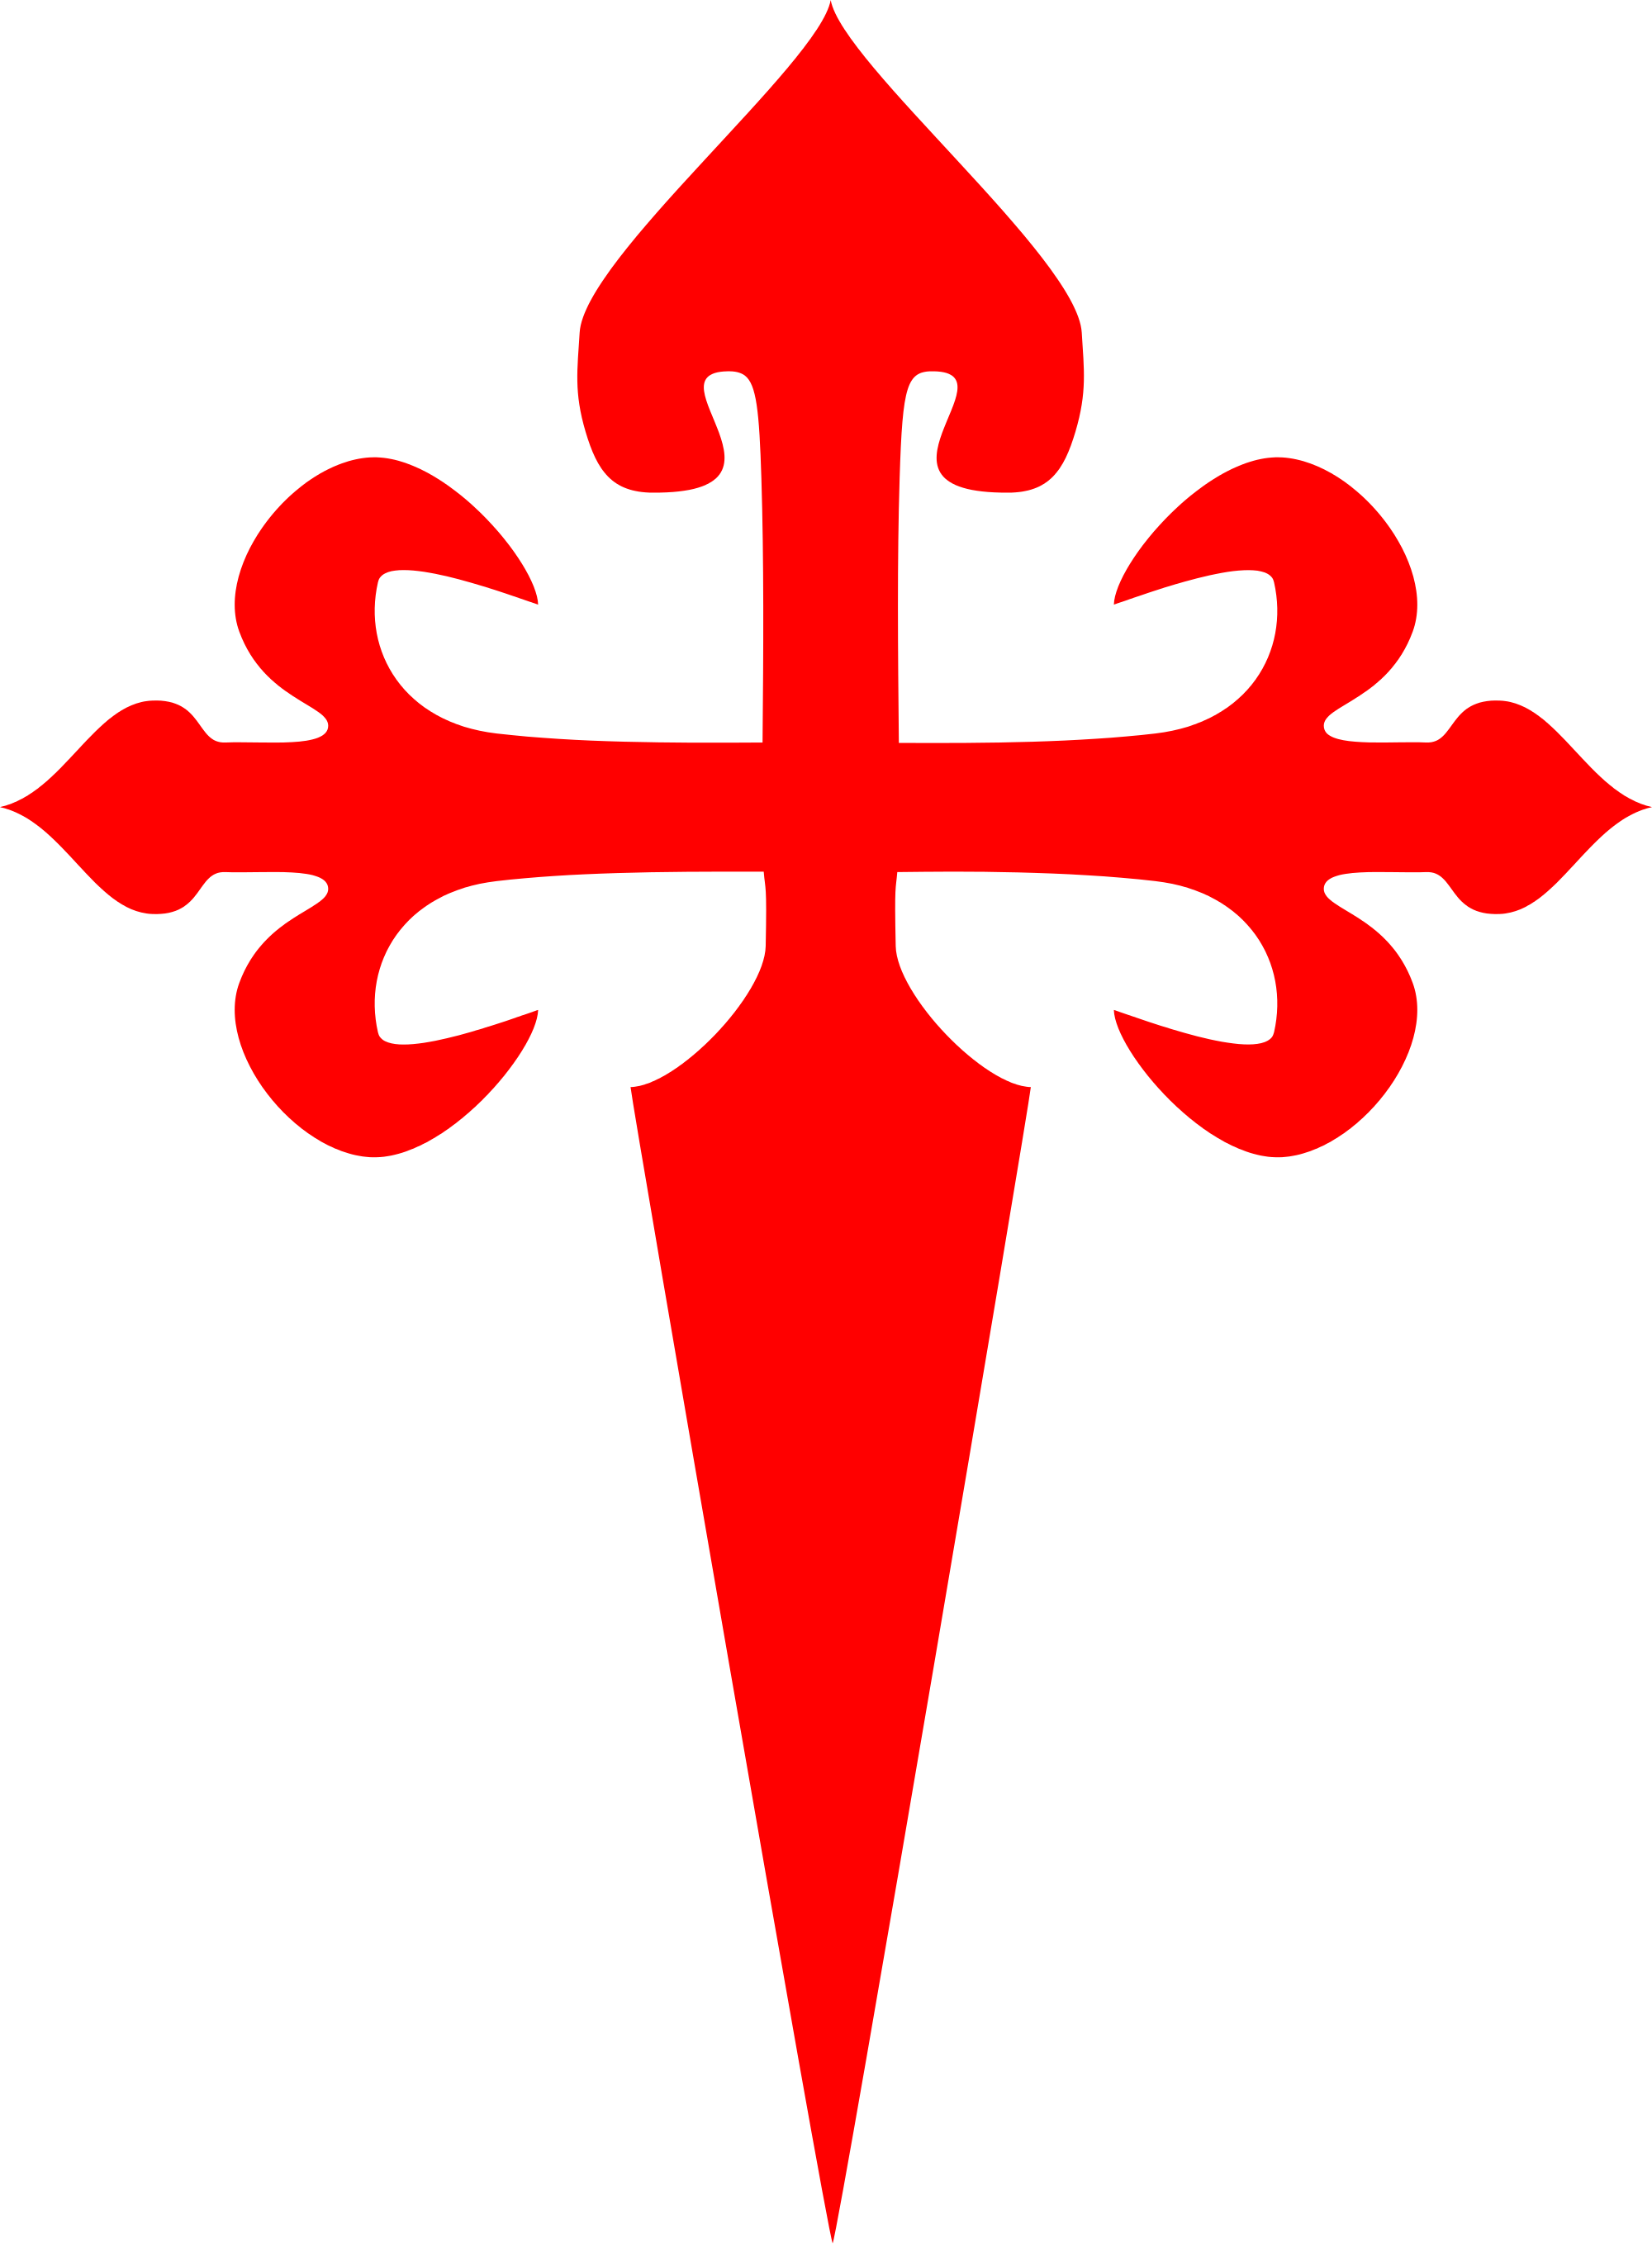 Crusader cross clipart clip royalty free cross of St James - Google Search | Classroom revamp | Pinterest ... clip royalty free